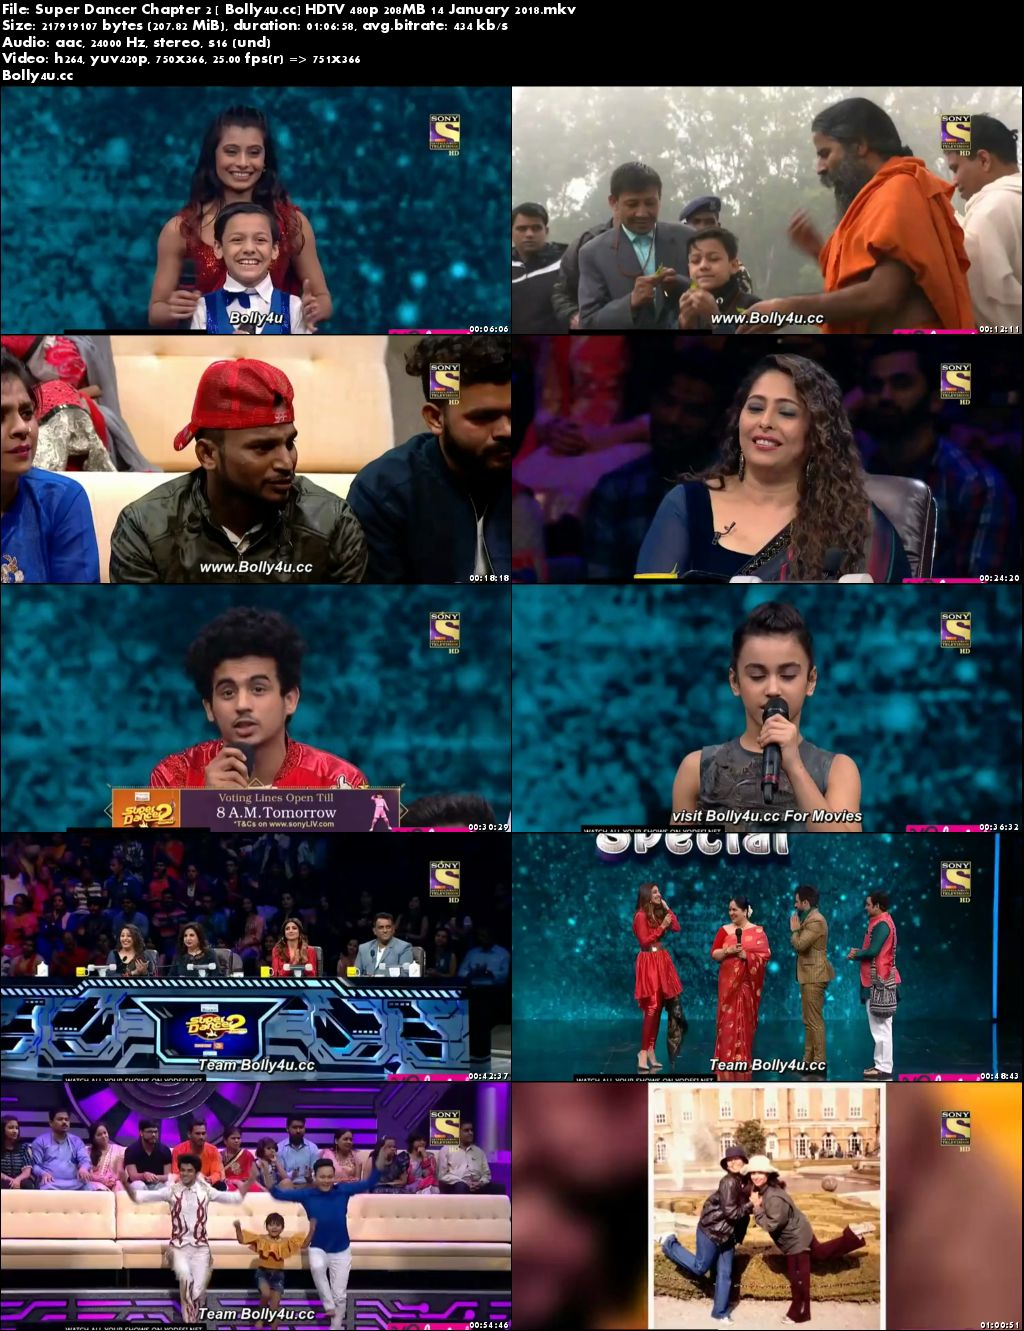 Super Dancer Chapter 2 HDTV 480p 200MB 14 January 2018 Download